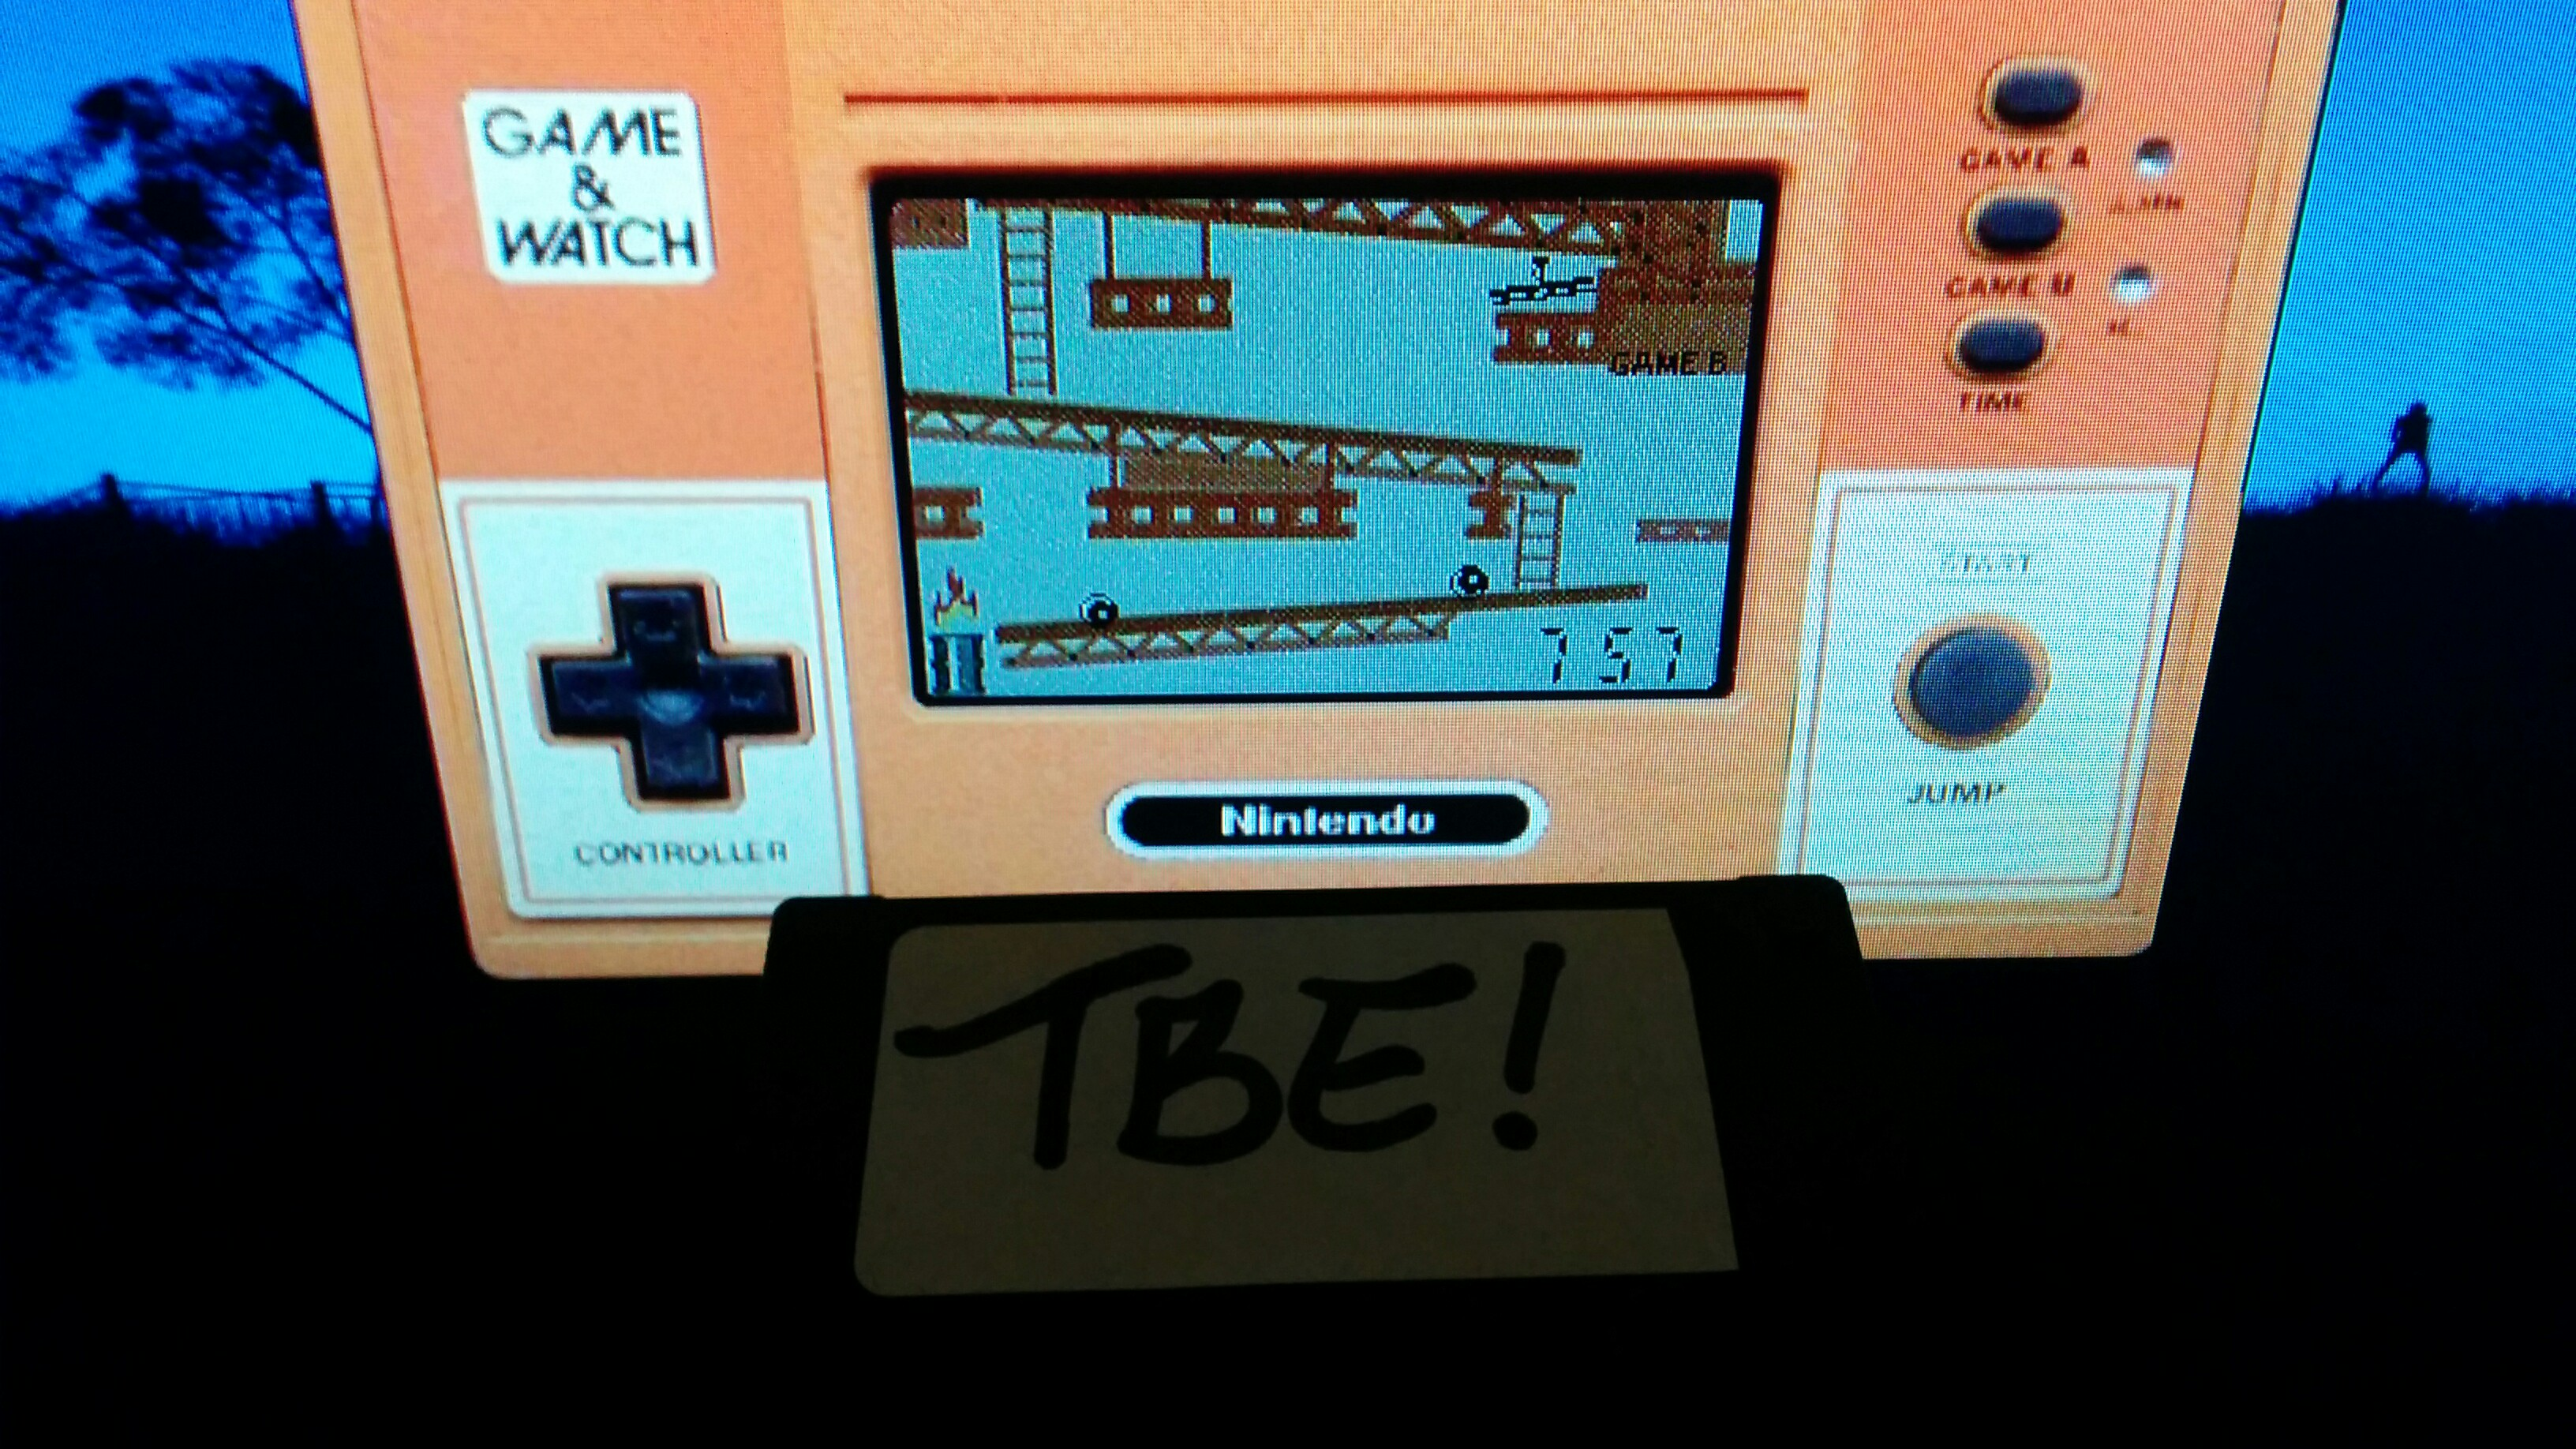 Sixx: Game and Watch: Donkey Kong [Game B] (Dedicated Handheld Emulated) 757 points on 2015-01-17 18:51:19